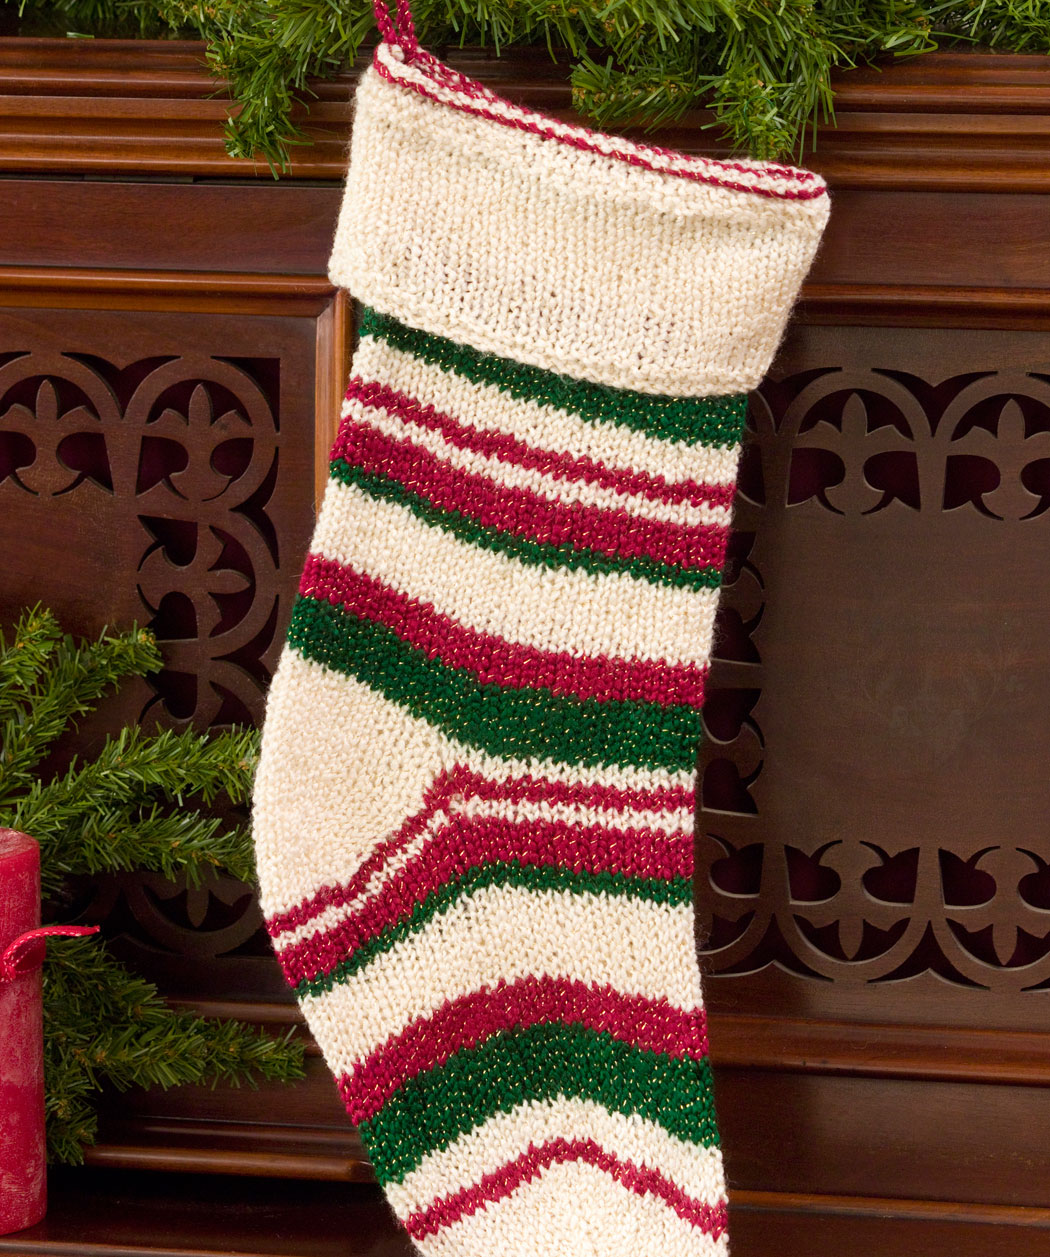 Cute knit christmas stockings with multicolorful christmas stocking and fireplace at chistmas day interior design